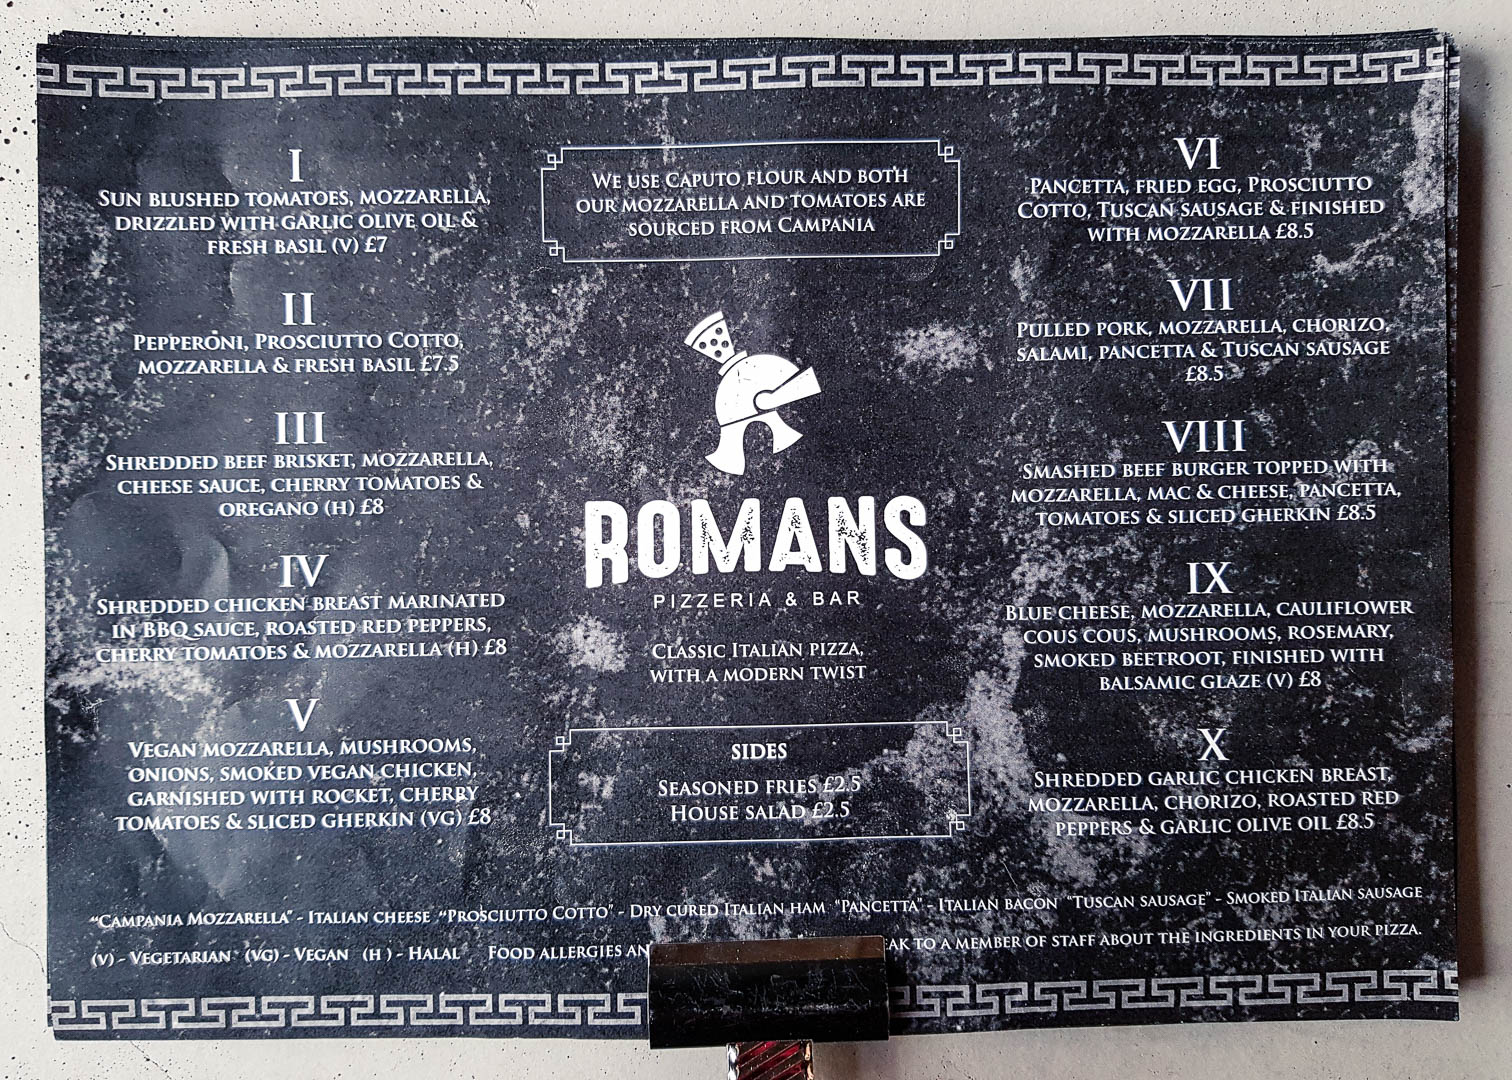 The full menu at the new vegan-friendly restaurant Romans Pizzeria Glasgow.